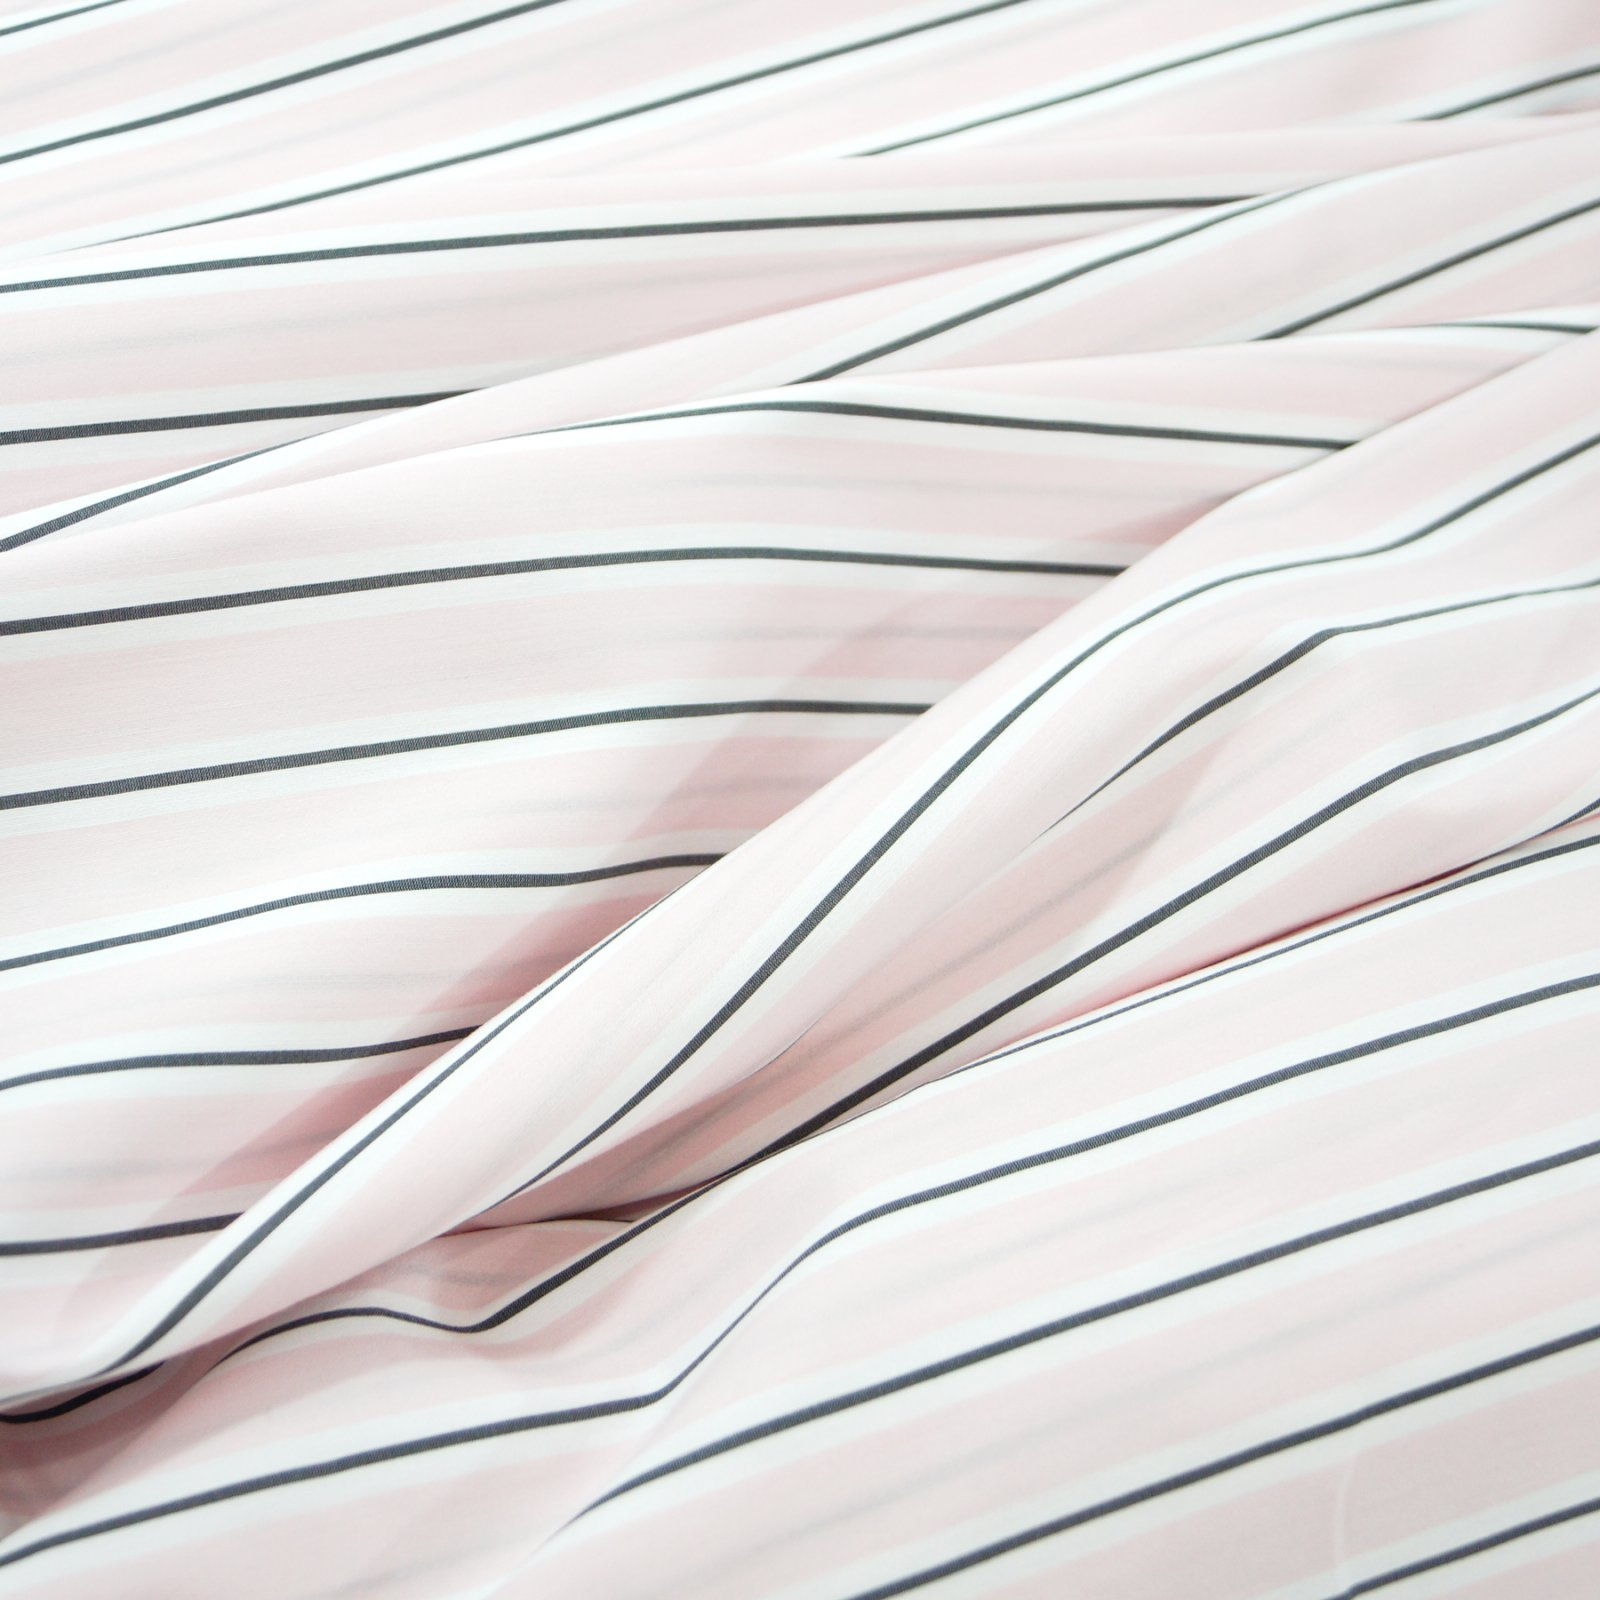 Cotton Voile - Pink, Charcoal, & White Italian voile shirting by Milly